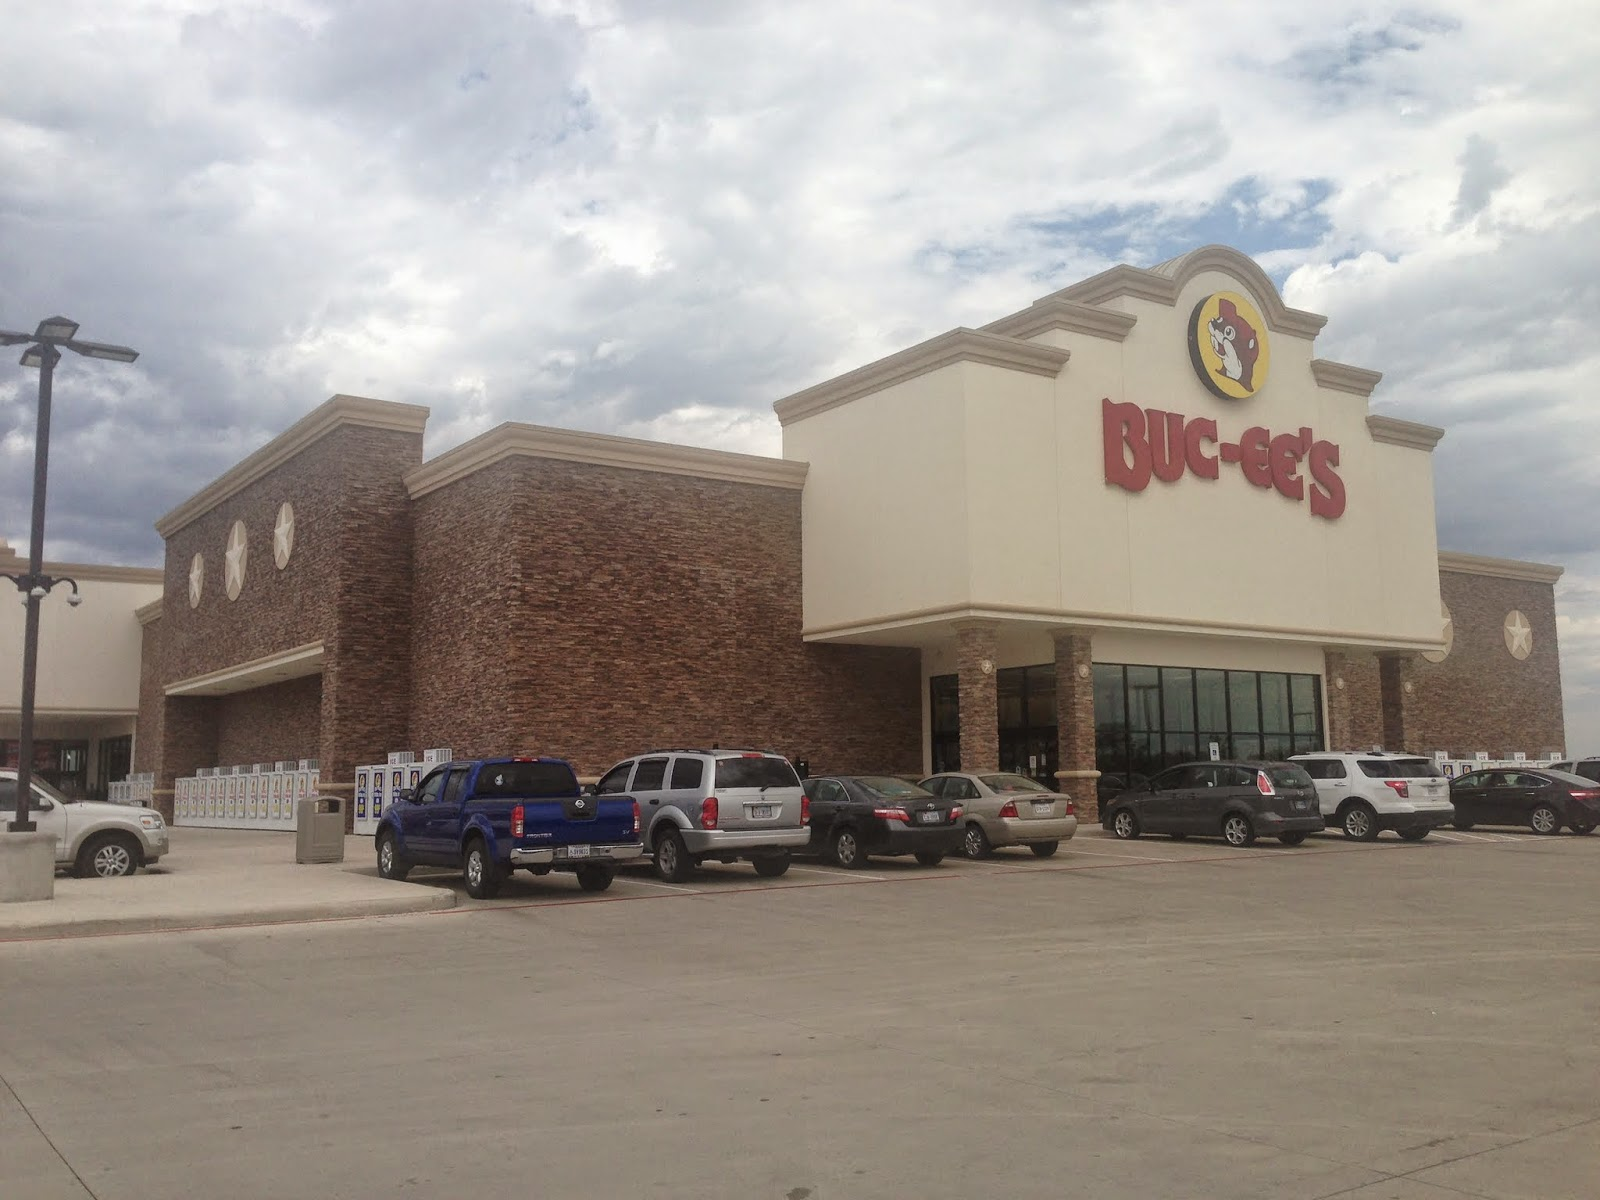 Buc ee s New Braunfels    the largest convenience store in the world. Mike Jutan s World  Texas 2013 Day 3  Buc ee s